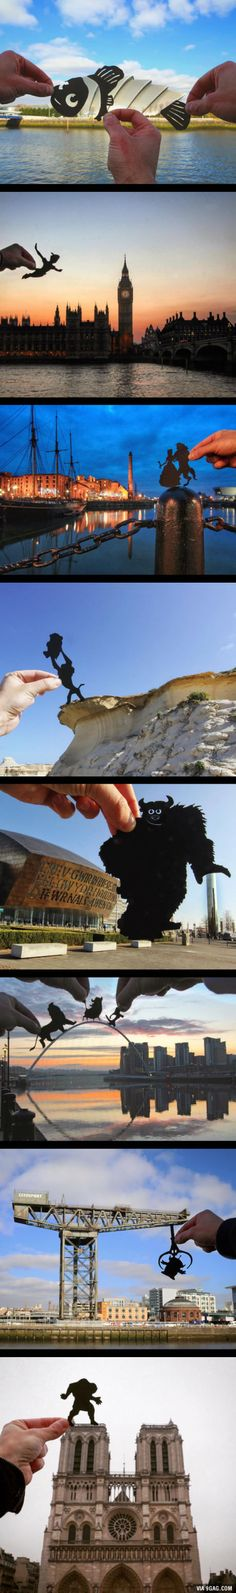 Artist Transforms Famous Landmarks Into Disney Scenes Using Only Paper (By Rich McCor)